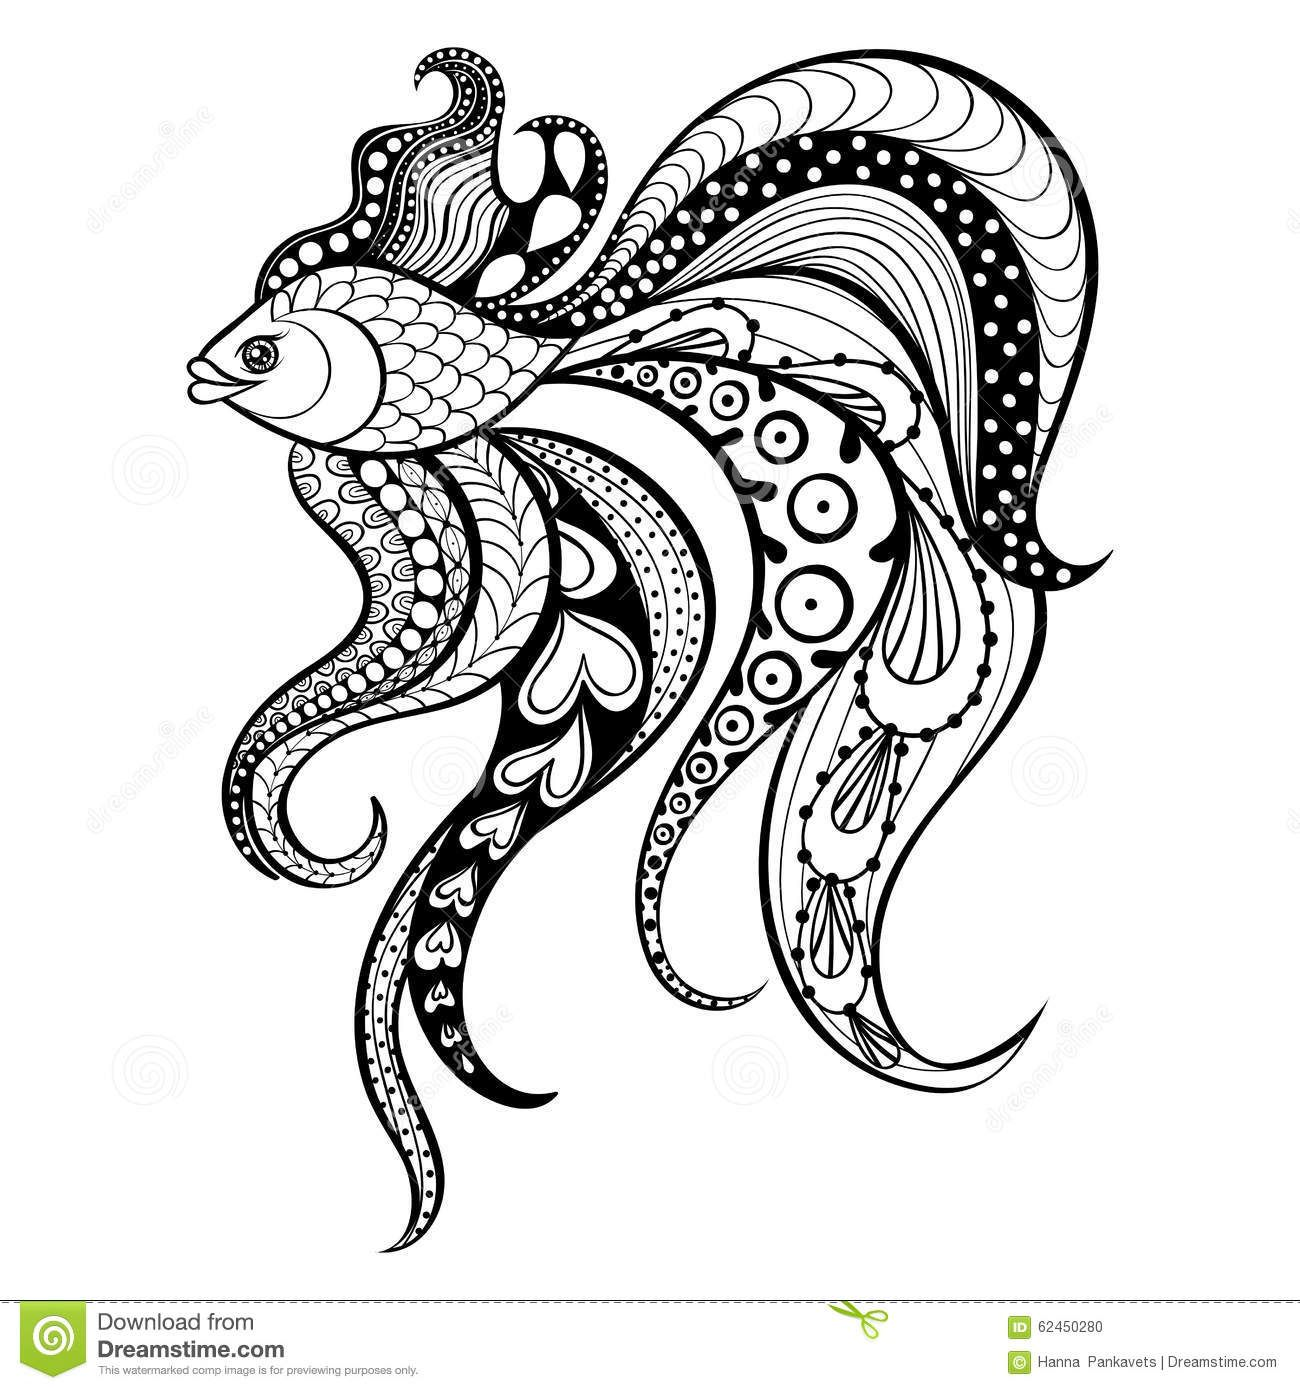 Zentangle Vector Gold Fish For Tattoo In Boho Hipster Style Or Download From